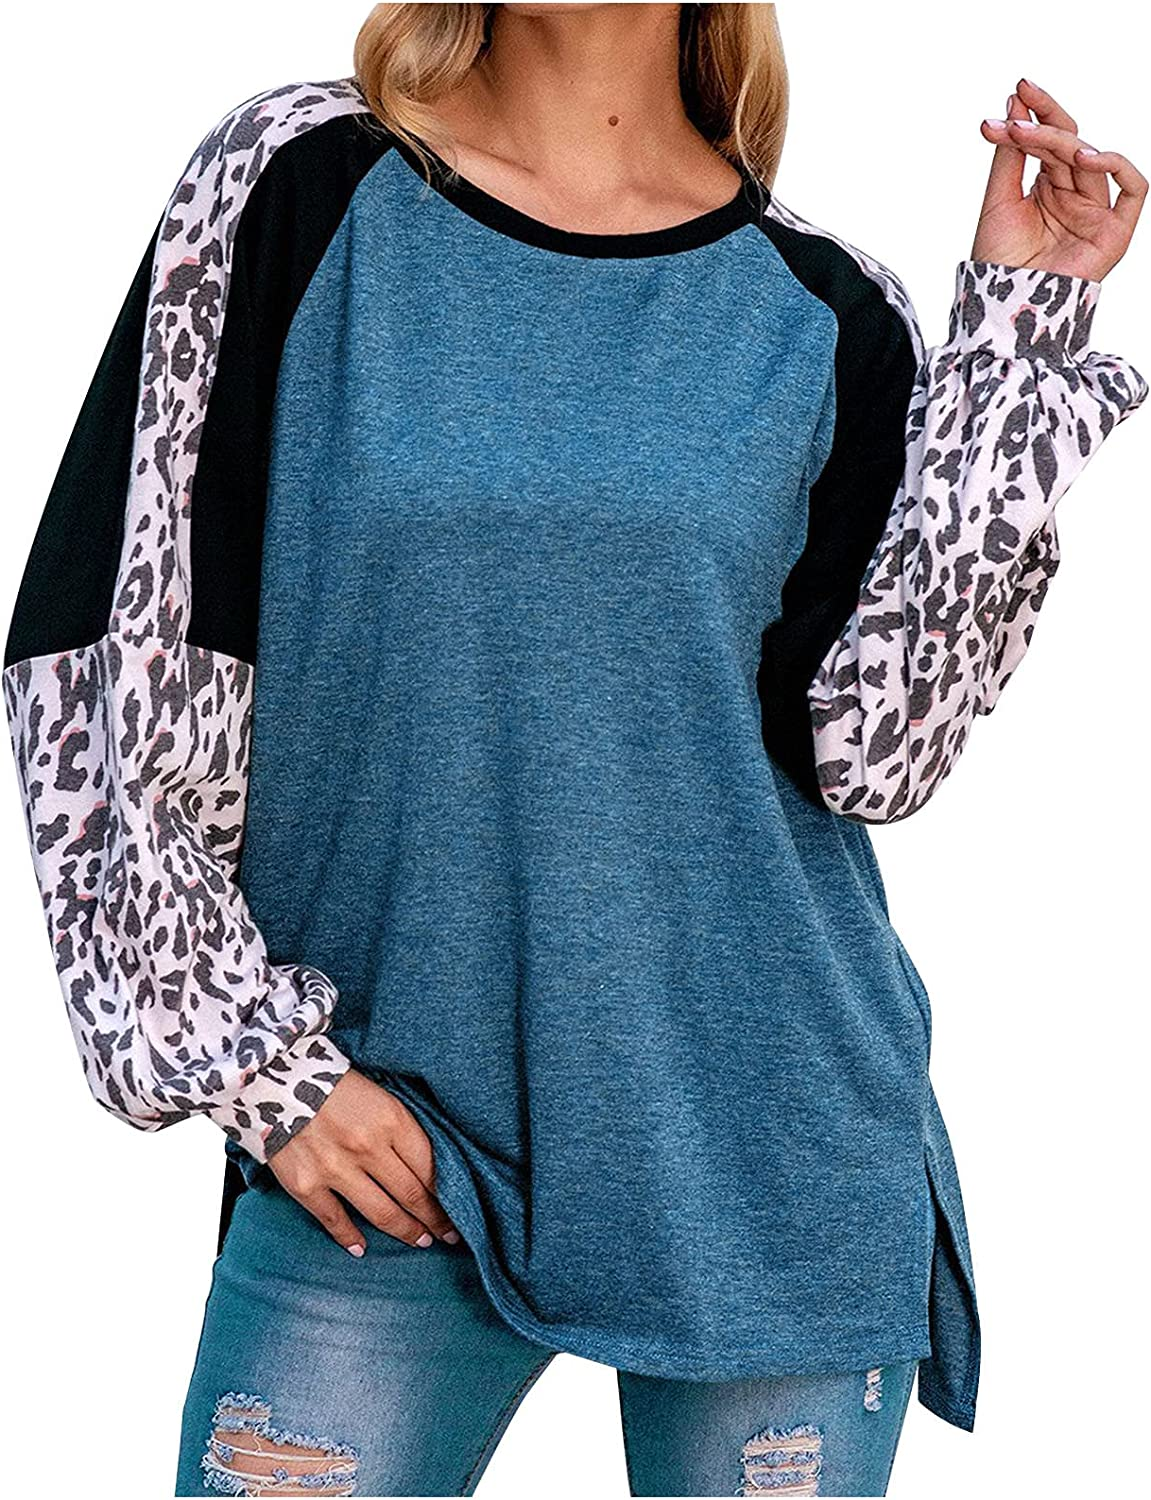 TIMIFIS Womens Pullover Sweatshirts Loose Long Sleeve Shirts Fashion Leopard Splicing Blouses Plus Size